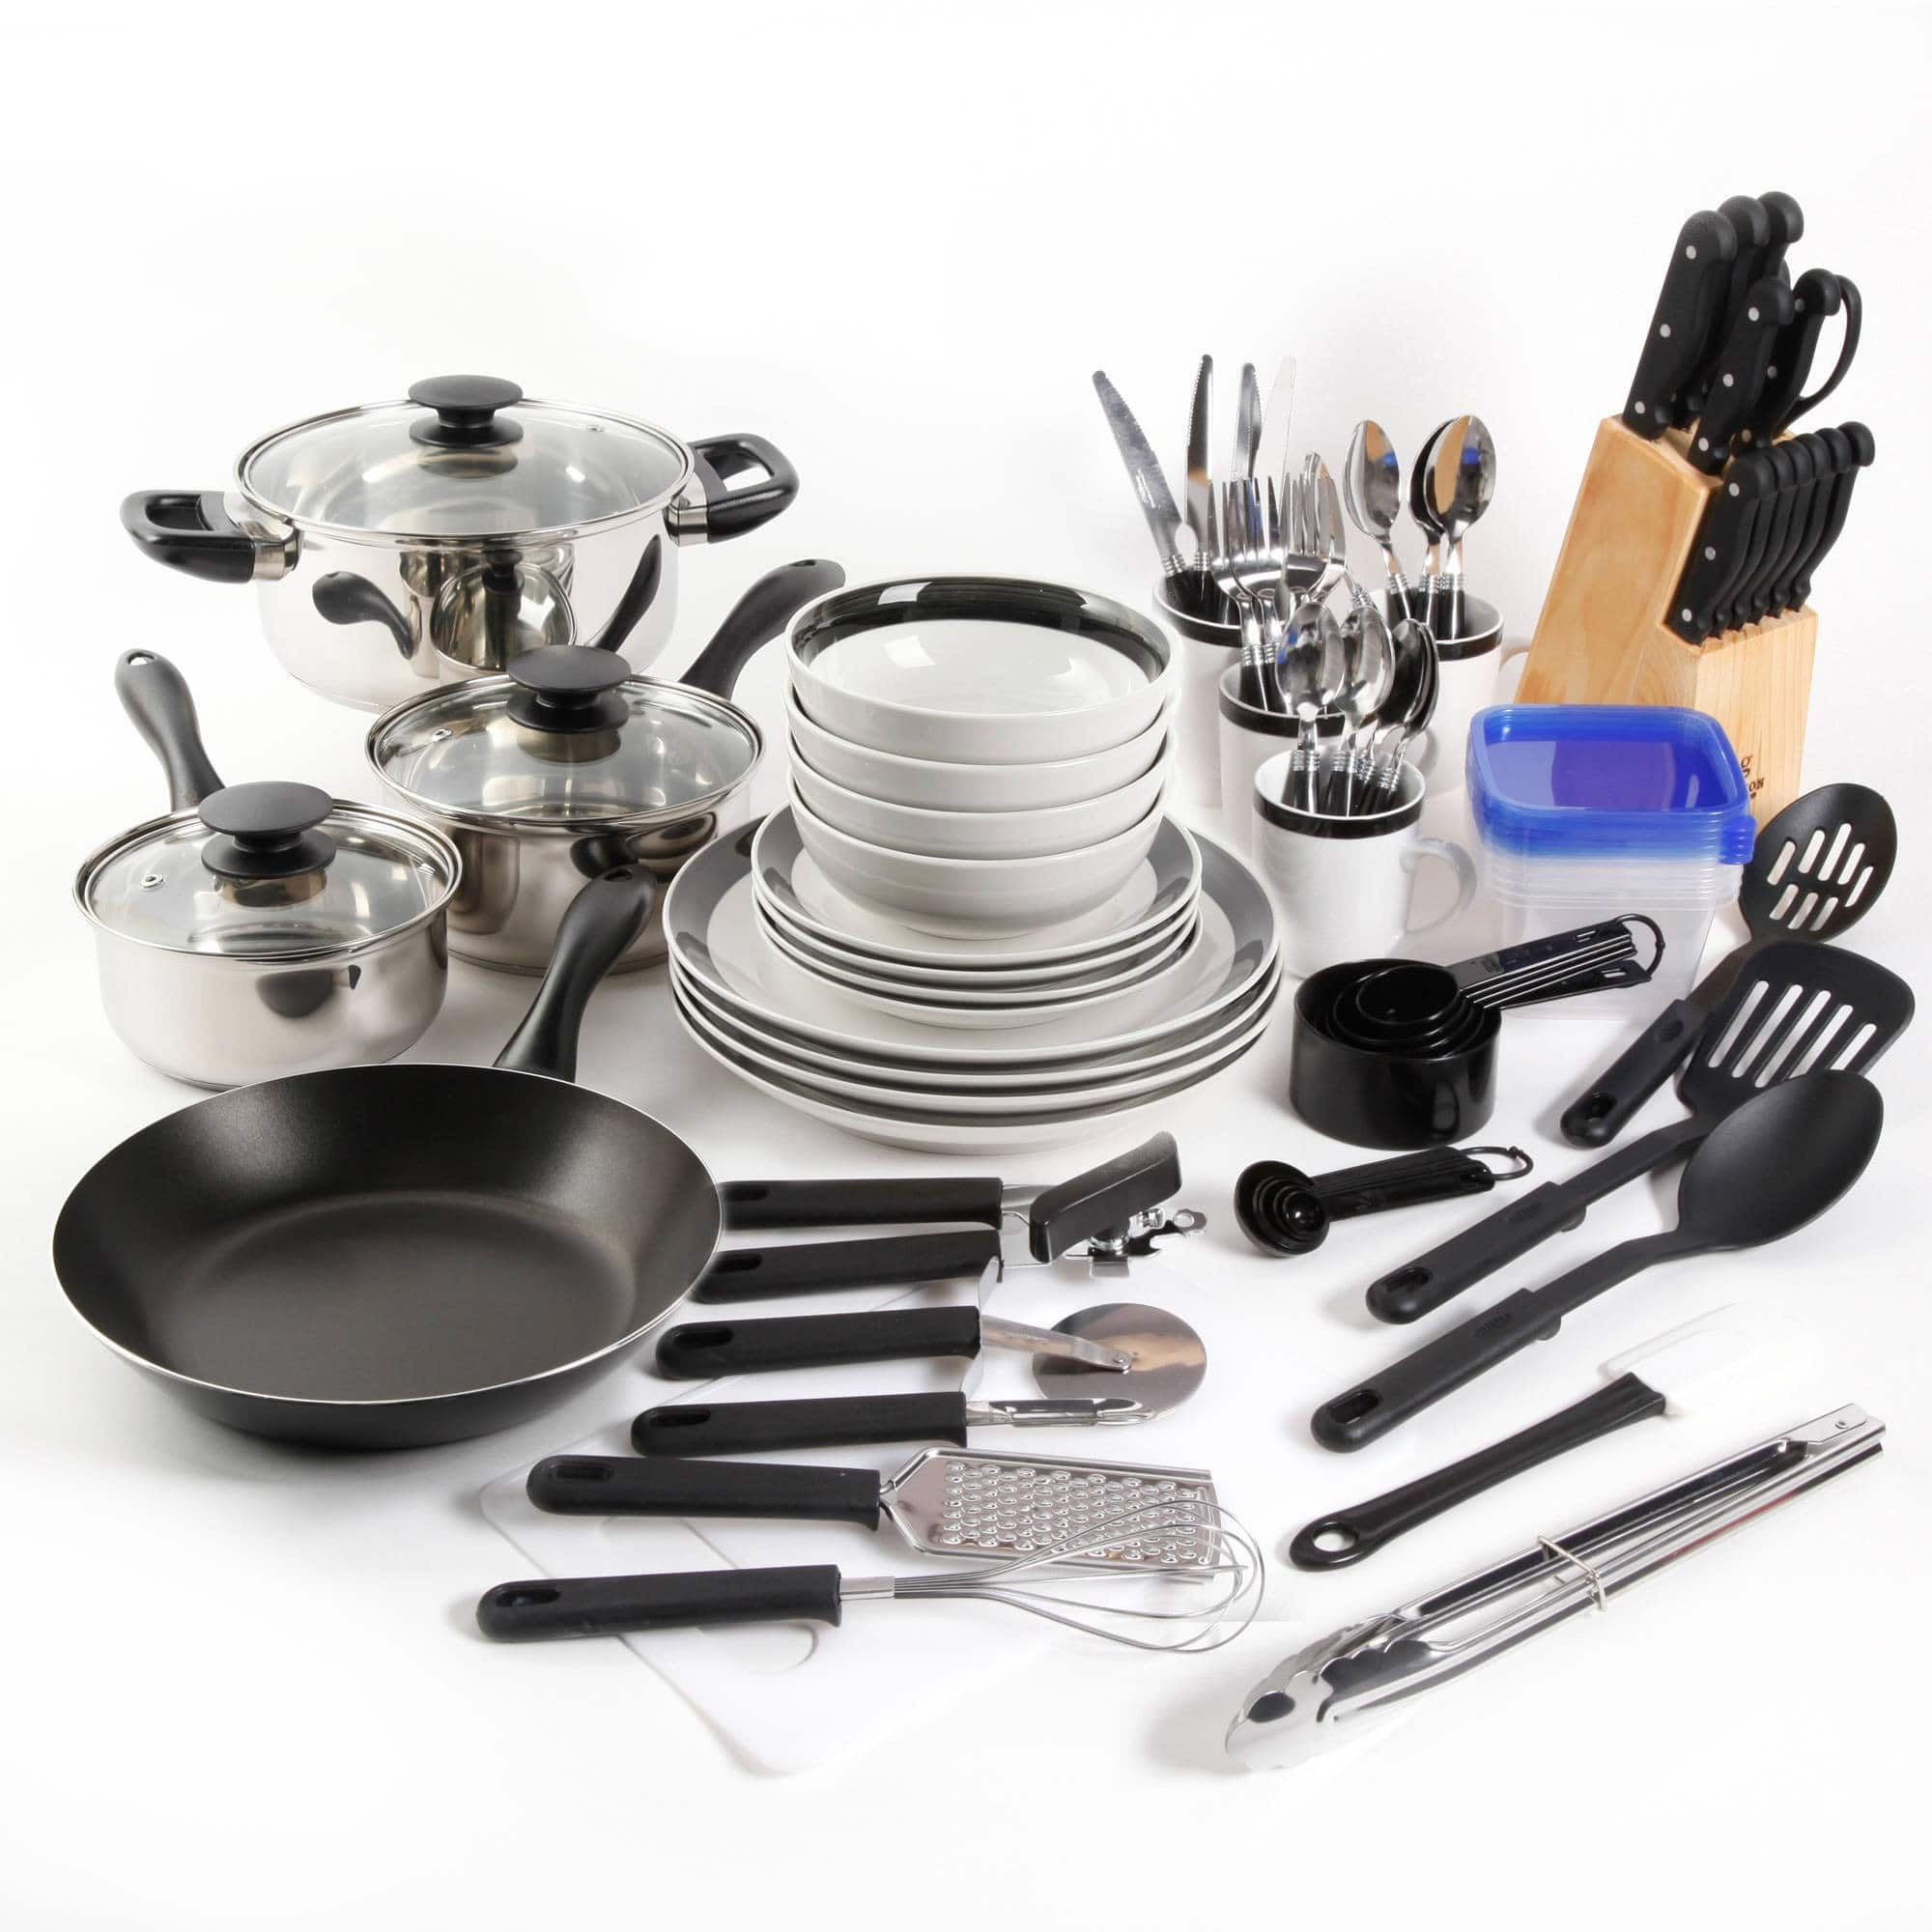 Gibson Home Essential Total Kitchen 83-Piece Combo Set $54.99